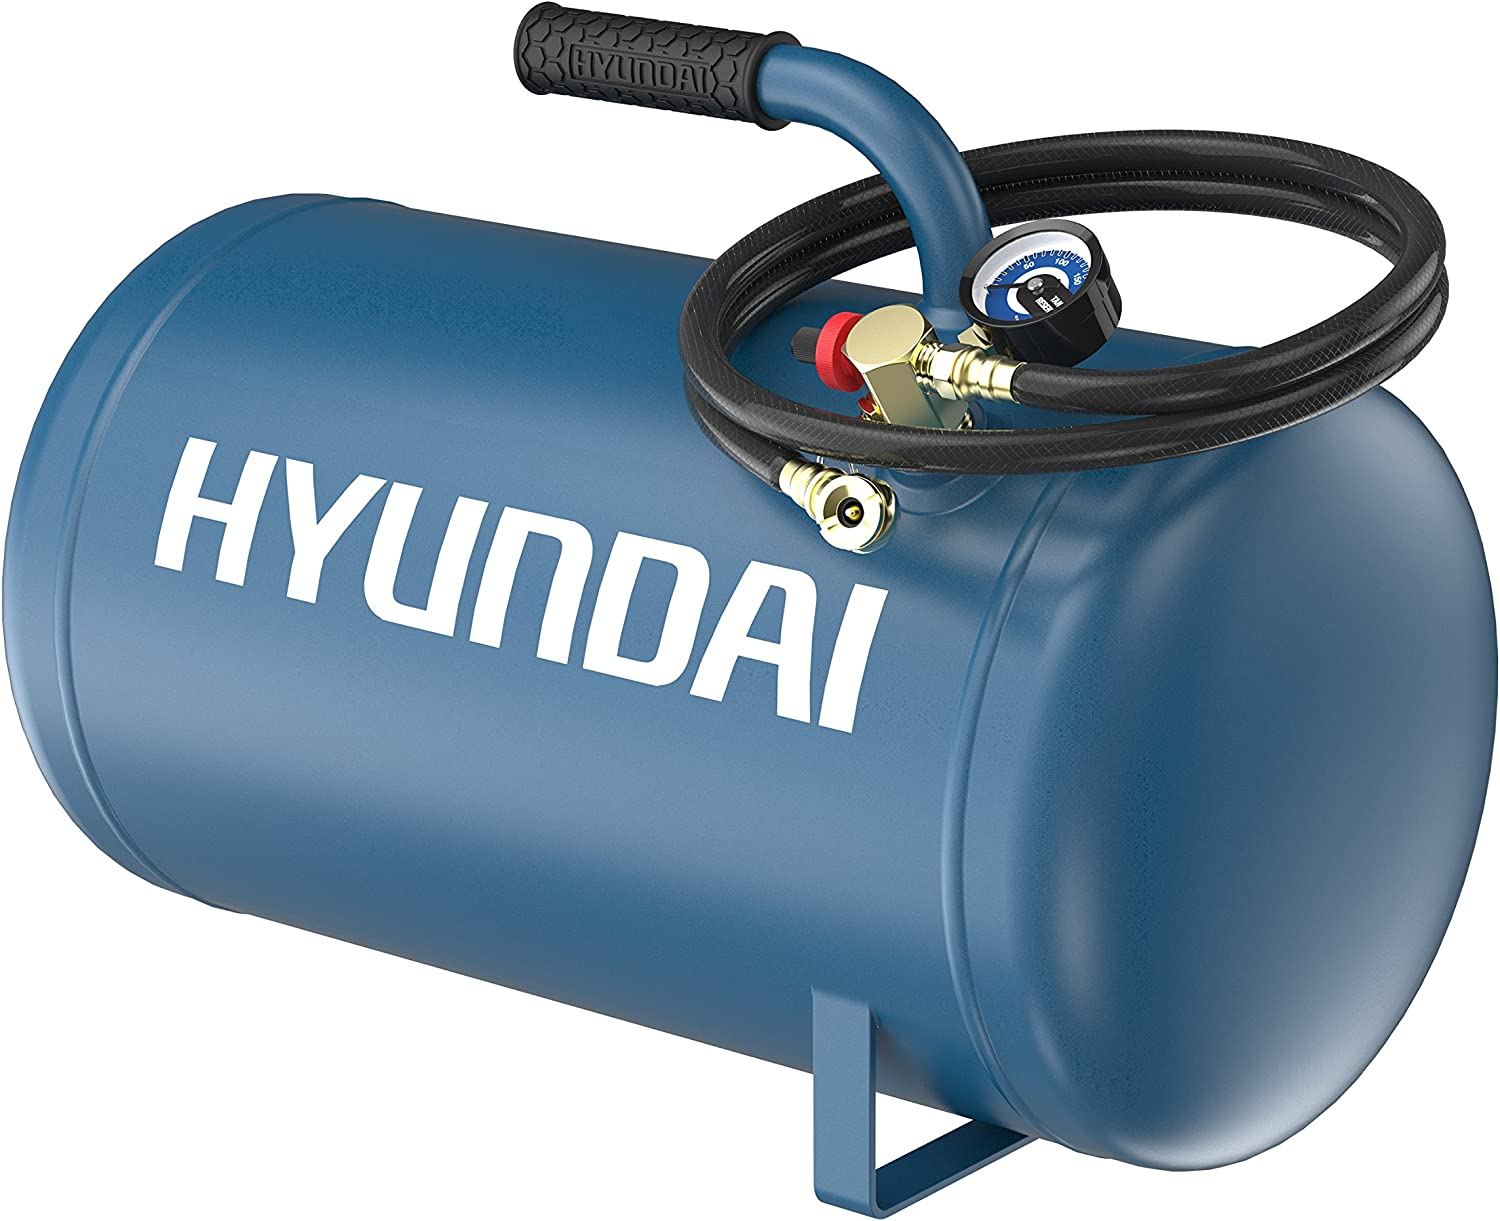 Hyundai Air Inflation Tank with Tire Hose